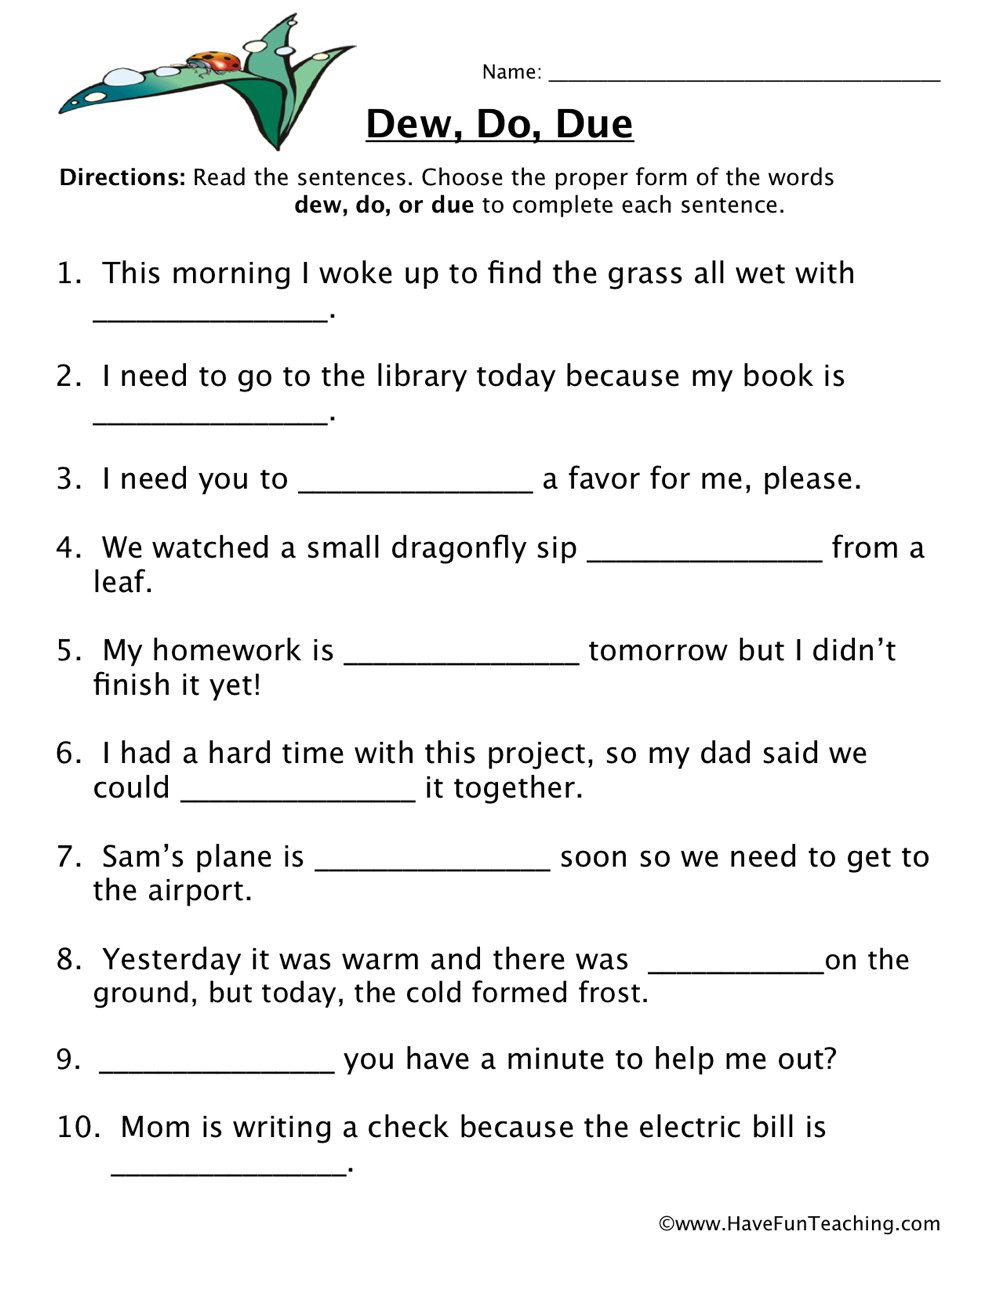 Homophones Worksheet 5th Grade Dew Do Due Homophones Worksheet